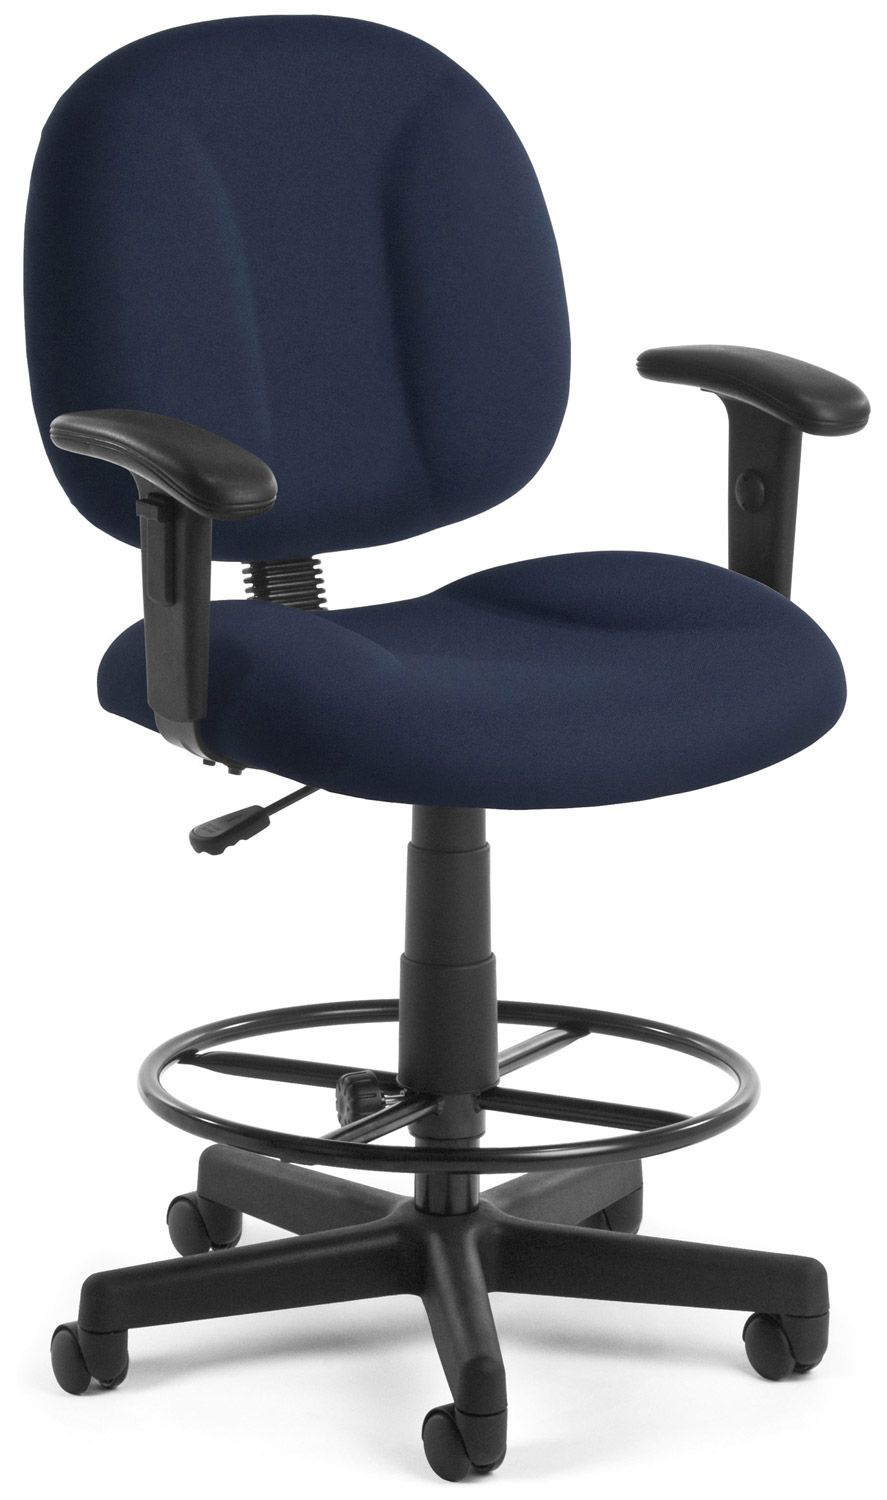 Comfort series navy color fabric super office chair with